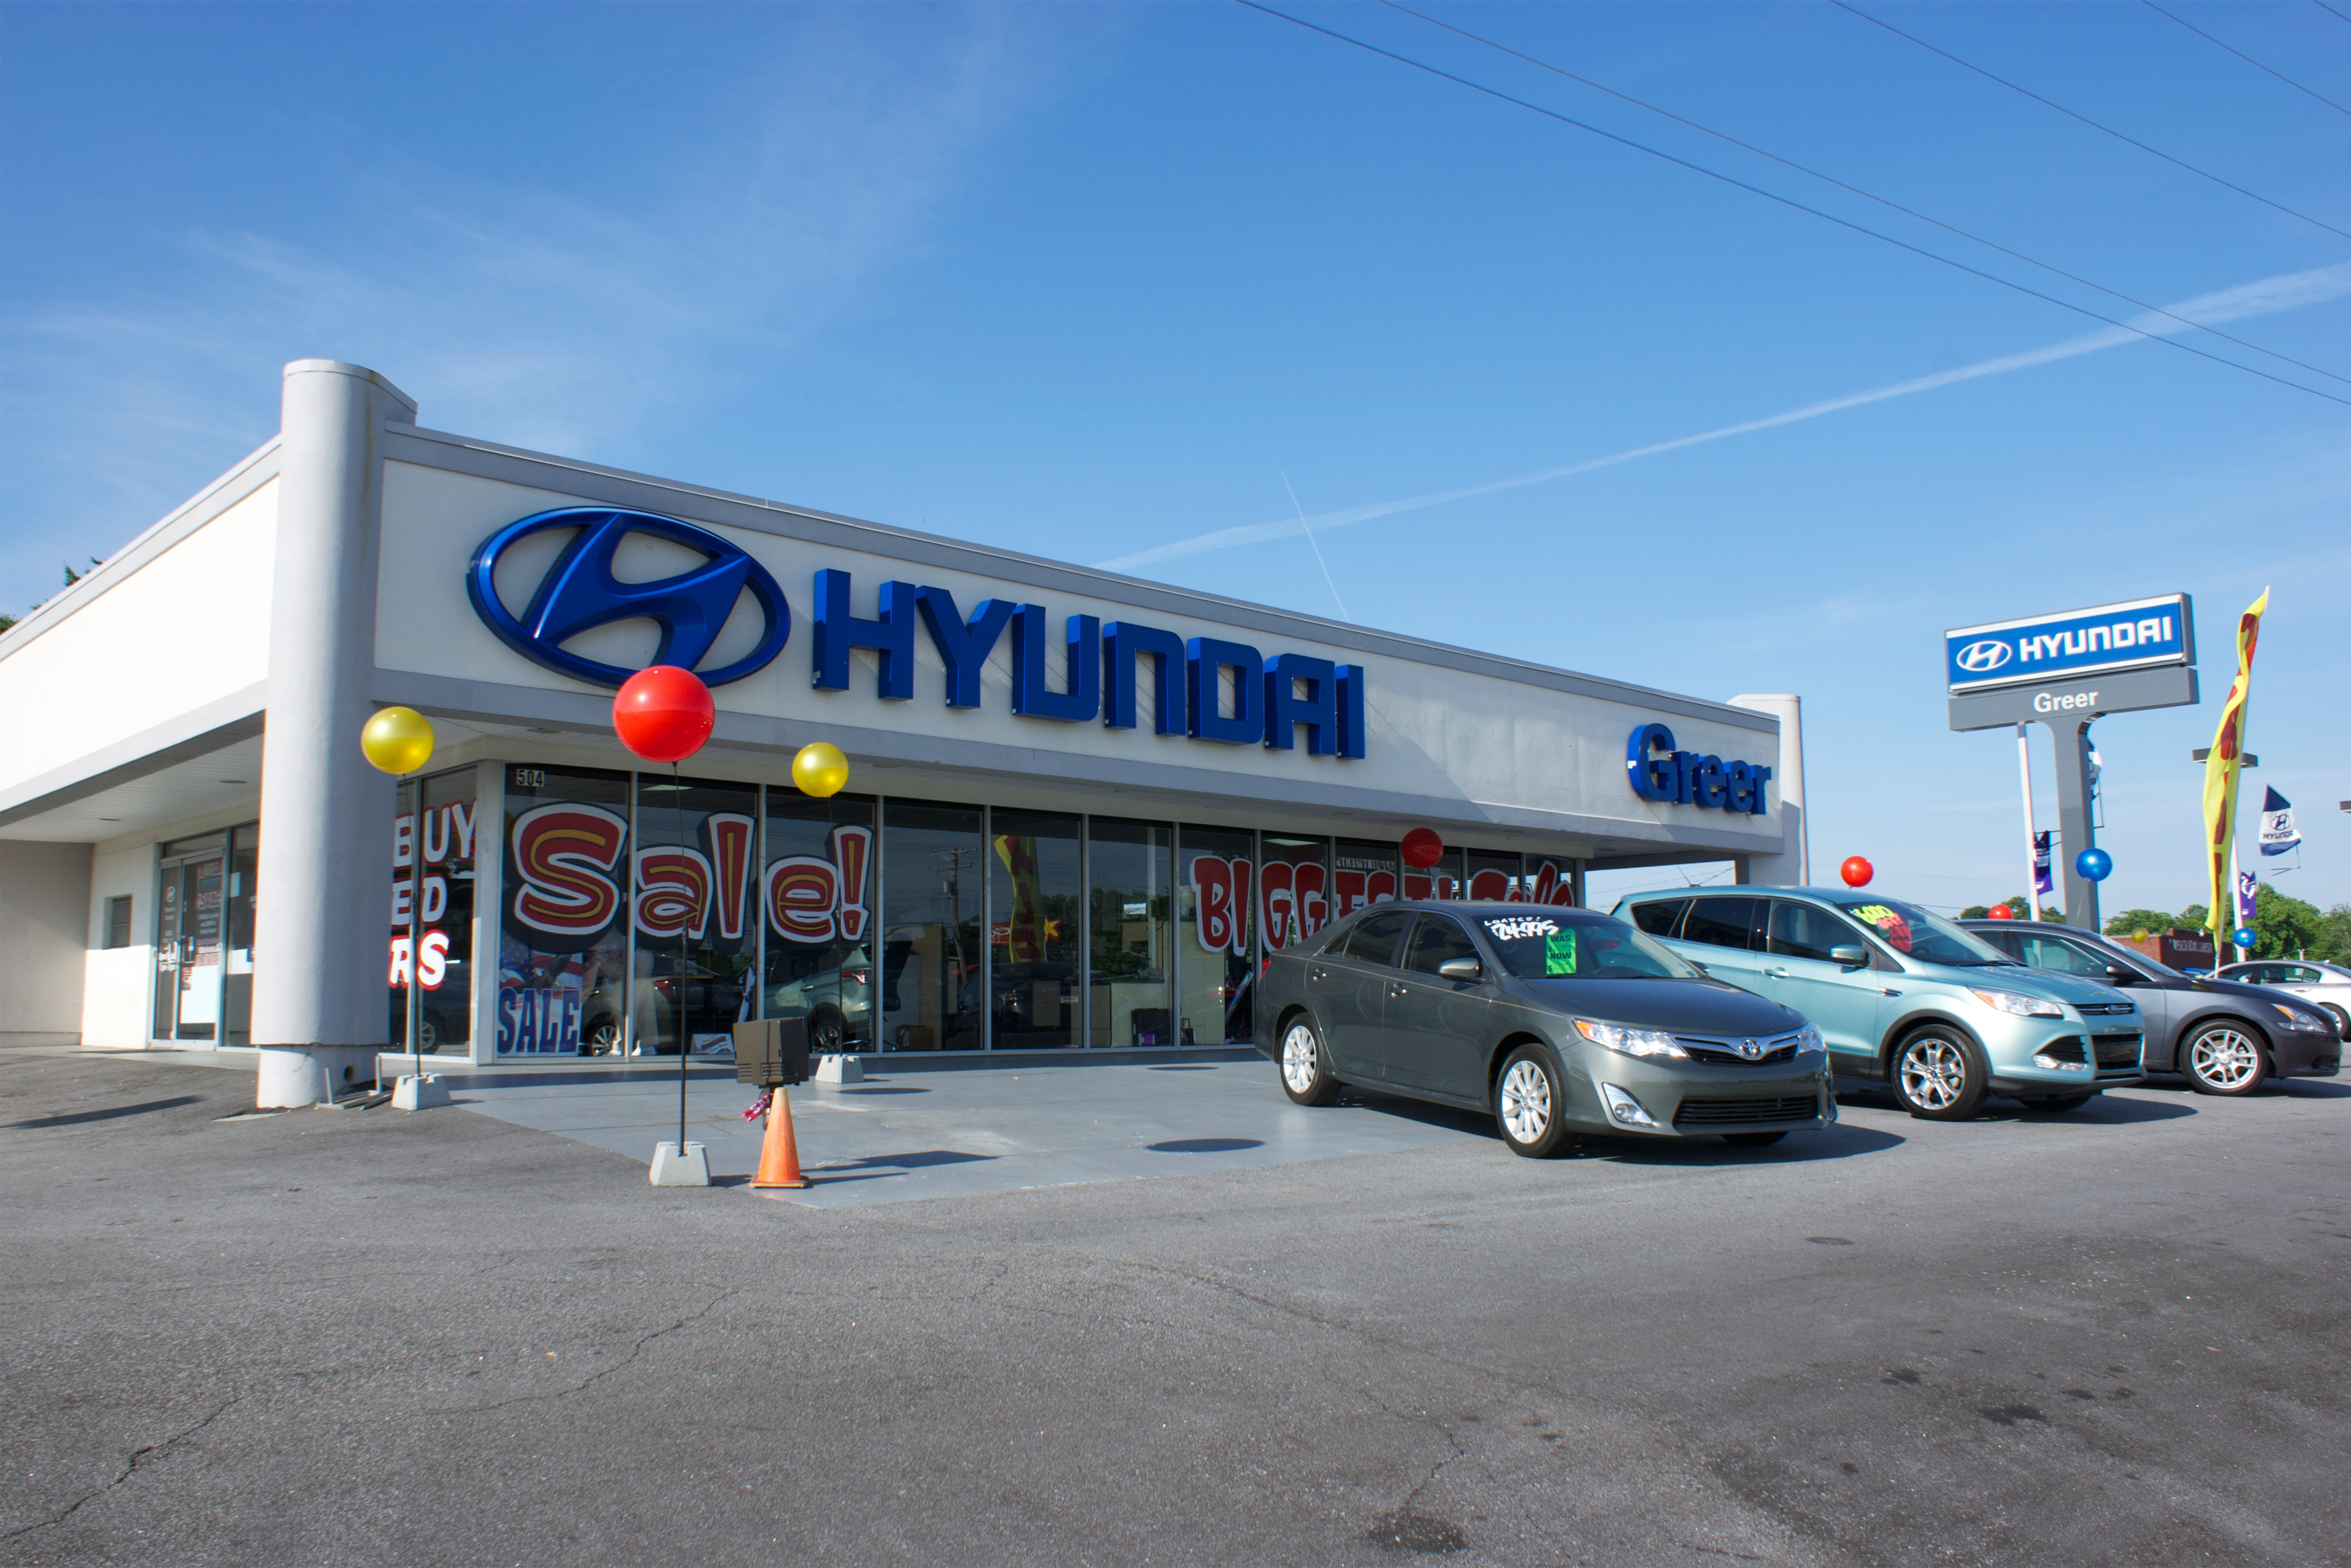 copart carfinder elantra in co gl greer sale title auctions silver hyundai online certificate of sc en auto on lot